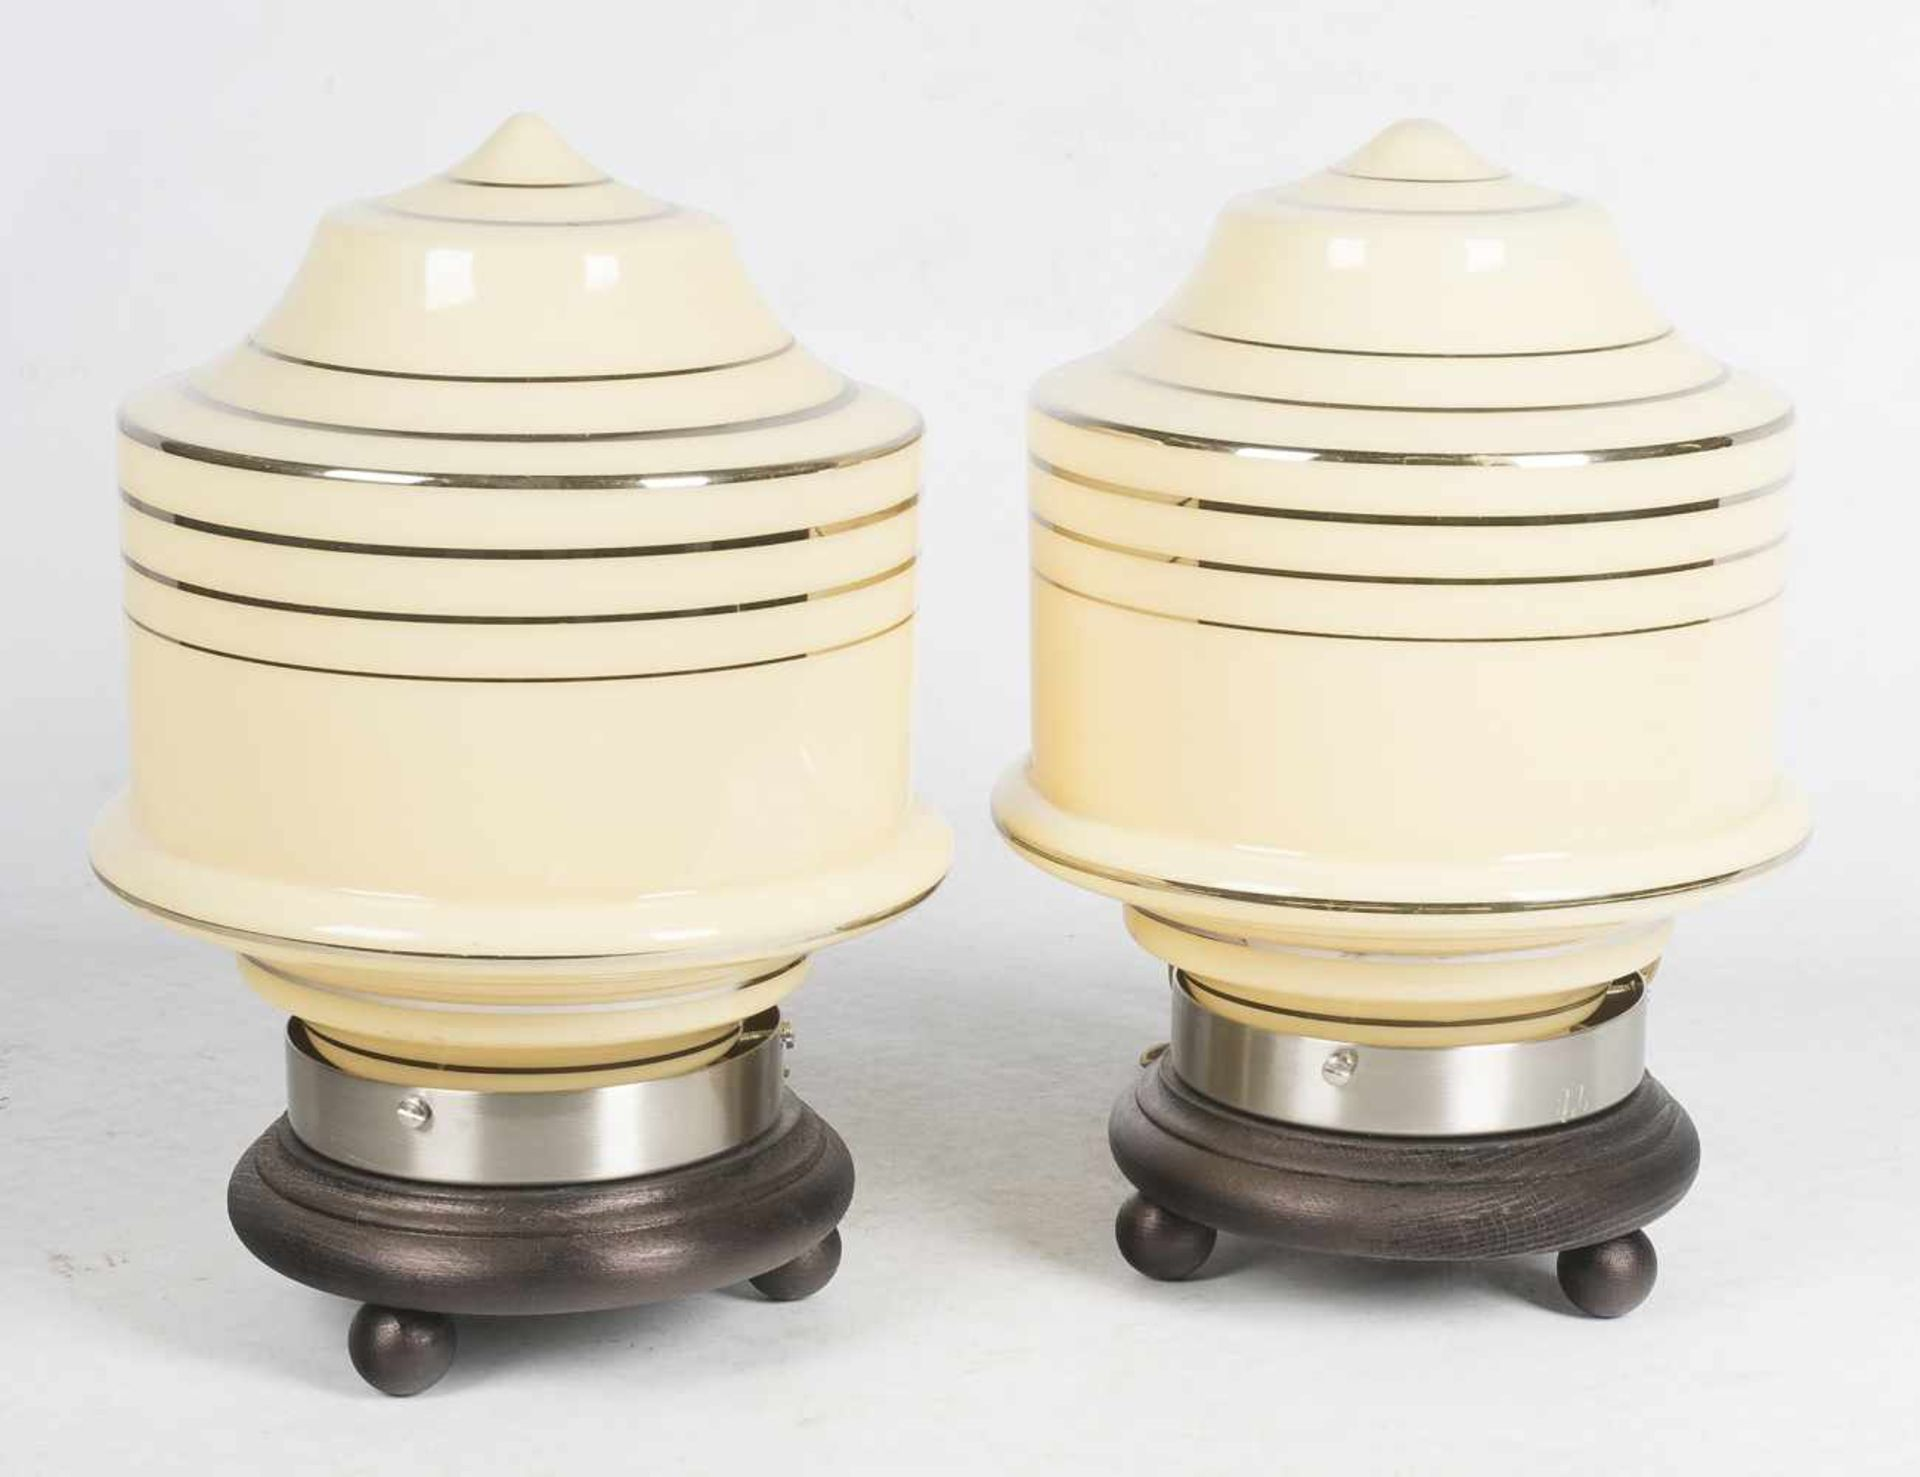 Los 49 - Pair of glass table lamps with a wooden base. Jena-Glas. Germany. Art Deco.